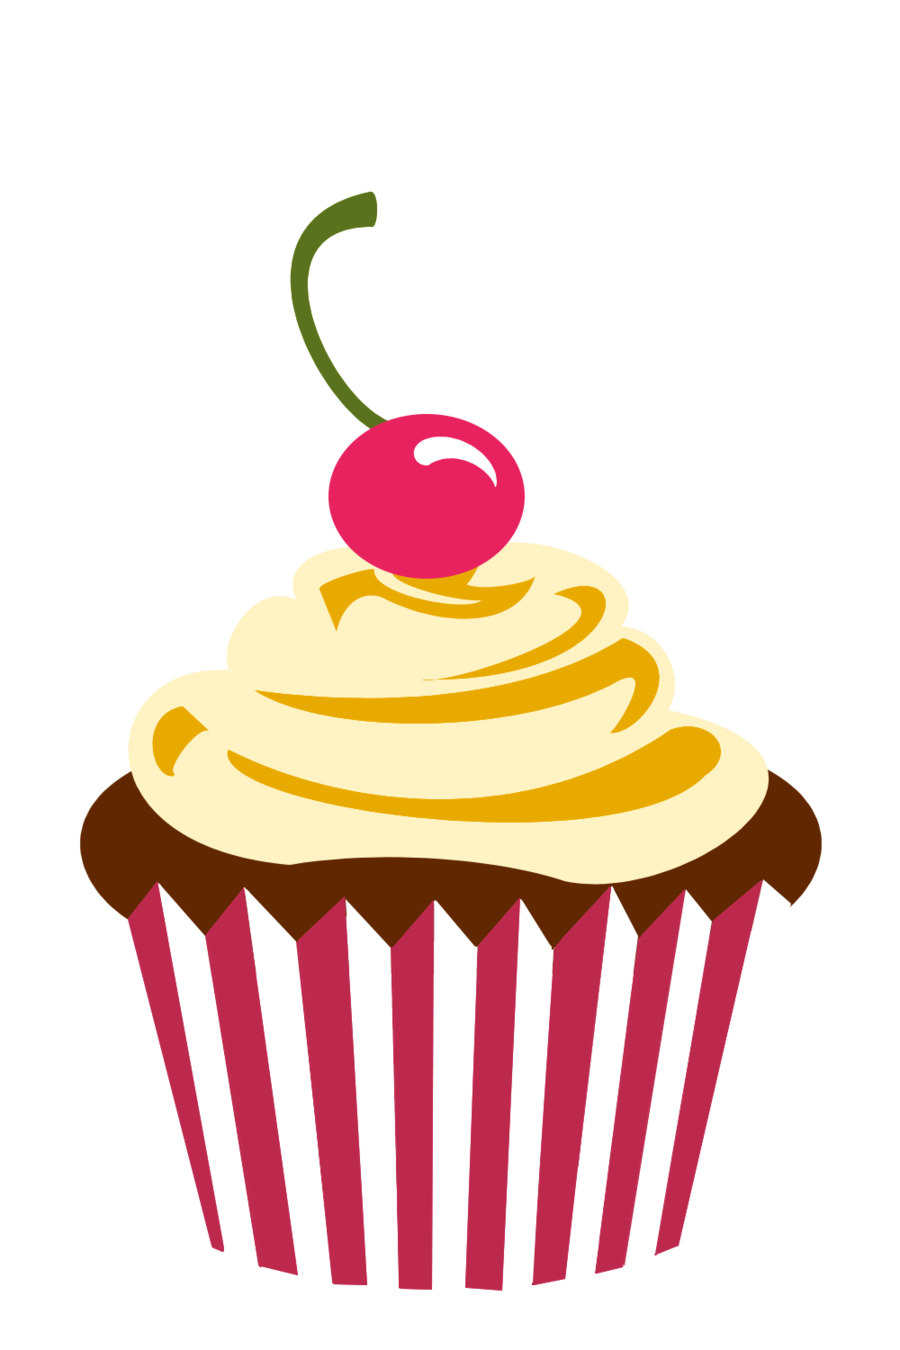 graphic royalty free download Cupcake Logo Png Cherry chocolate cupcake by